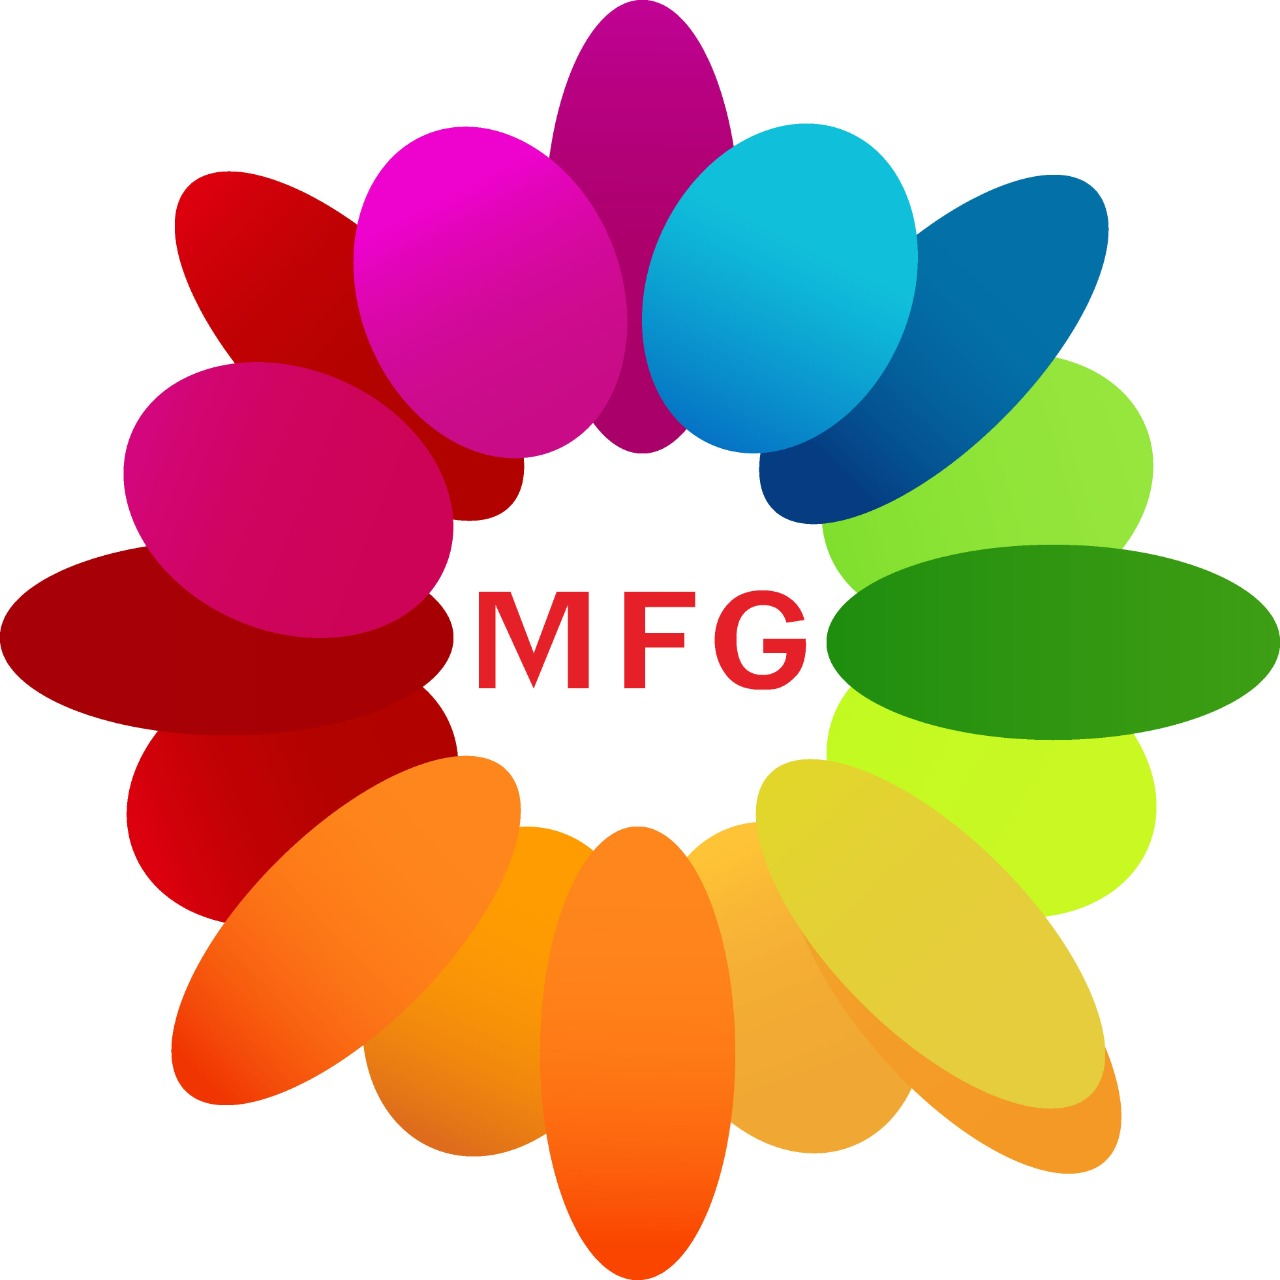 1 Feet Height Teddy Sitting In Flower Basket With Mix